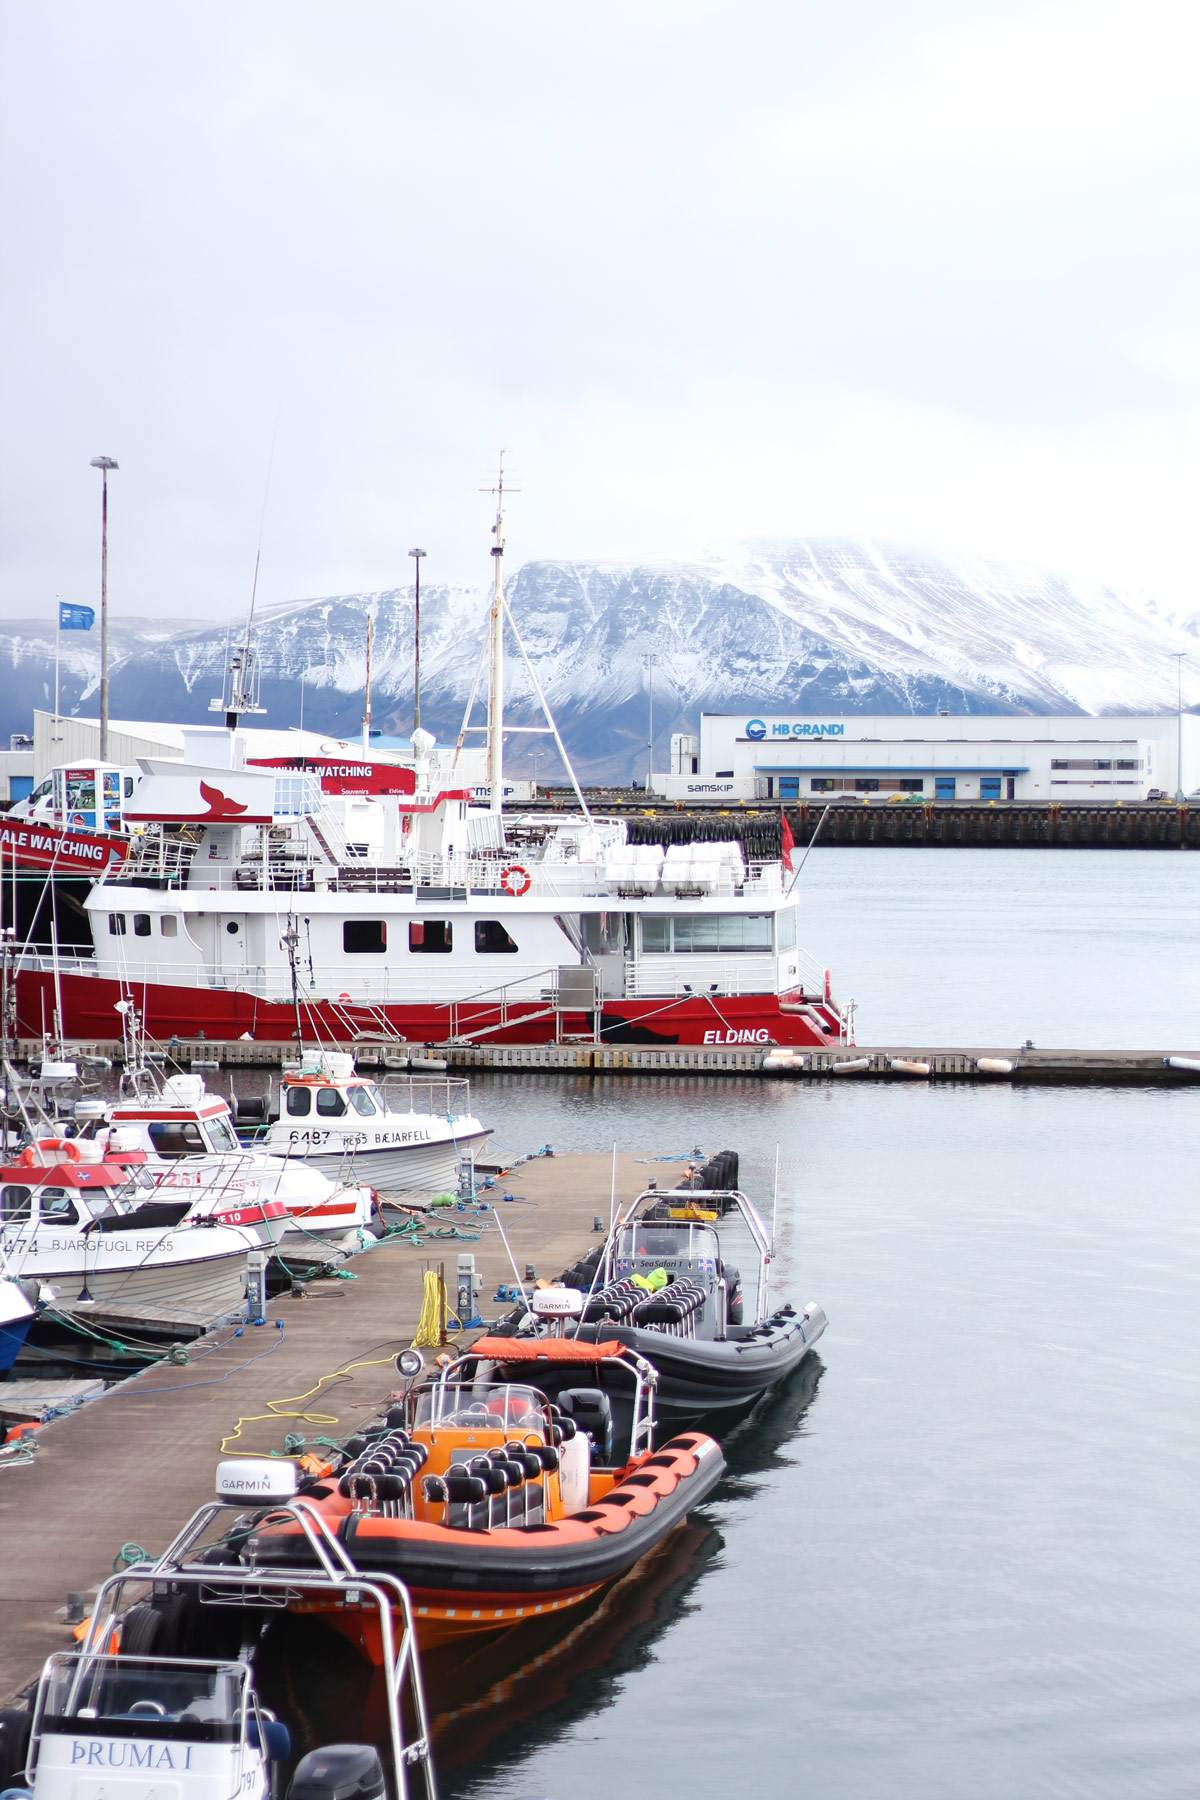 iceland-reykjavik-keflavik-review-photo-diary-travel-blog-downtown-harbour-5